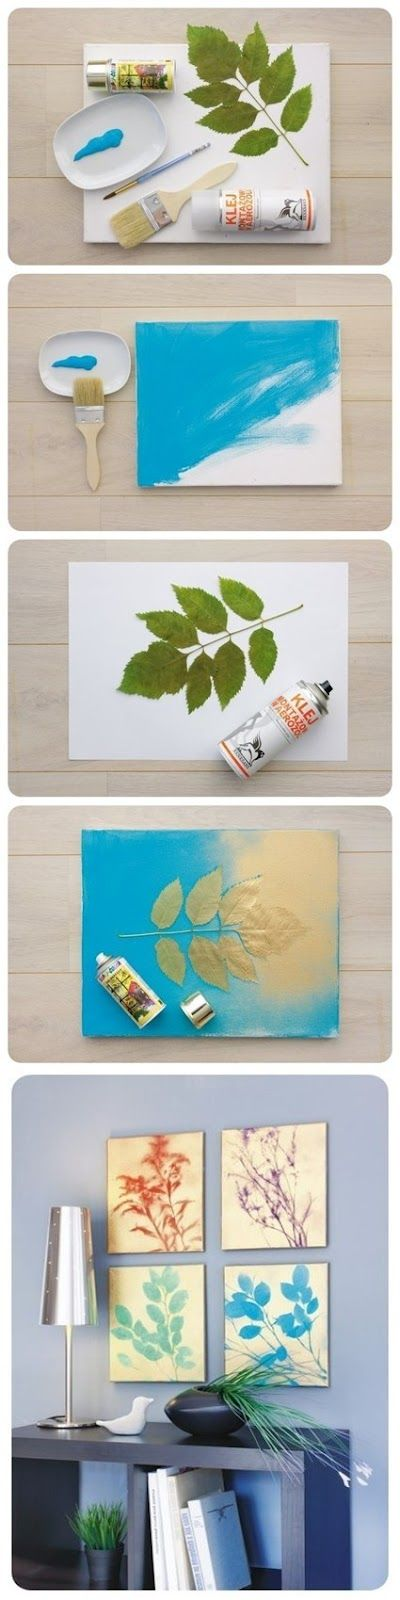 DIY Stenciled Nature Wall Art on Canvas.